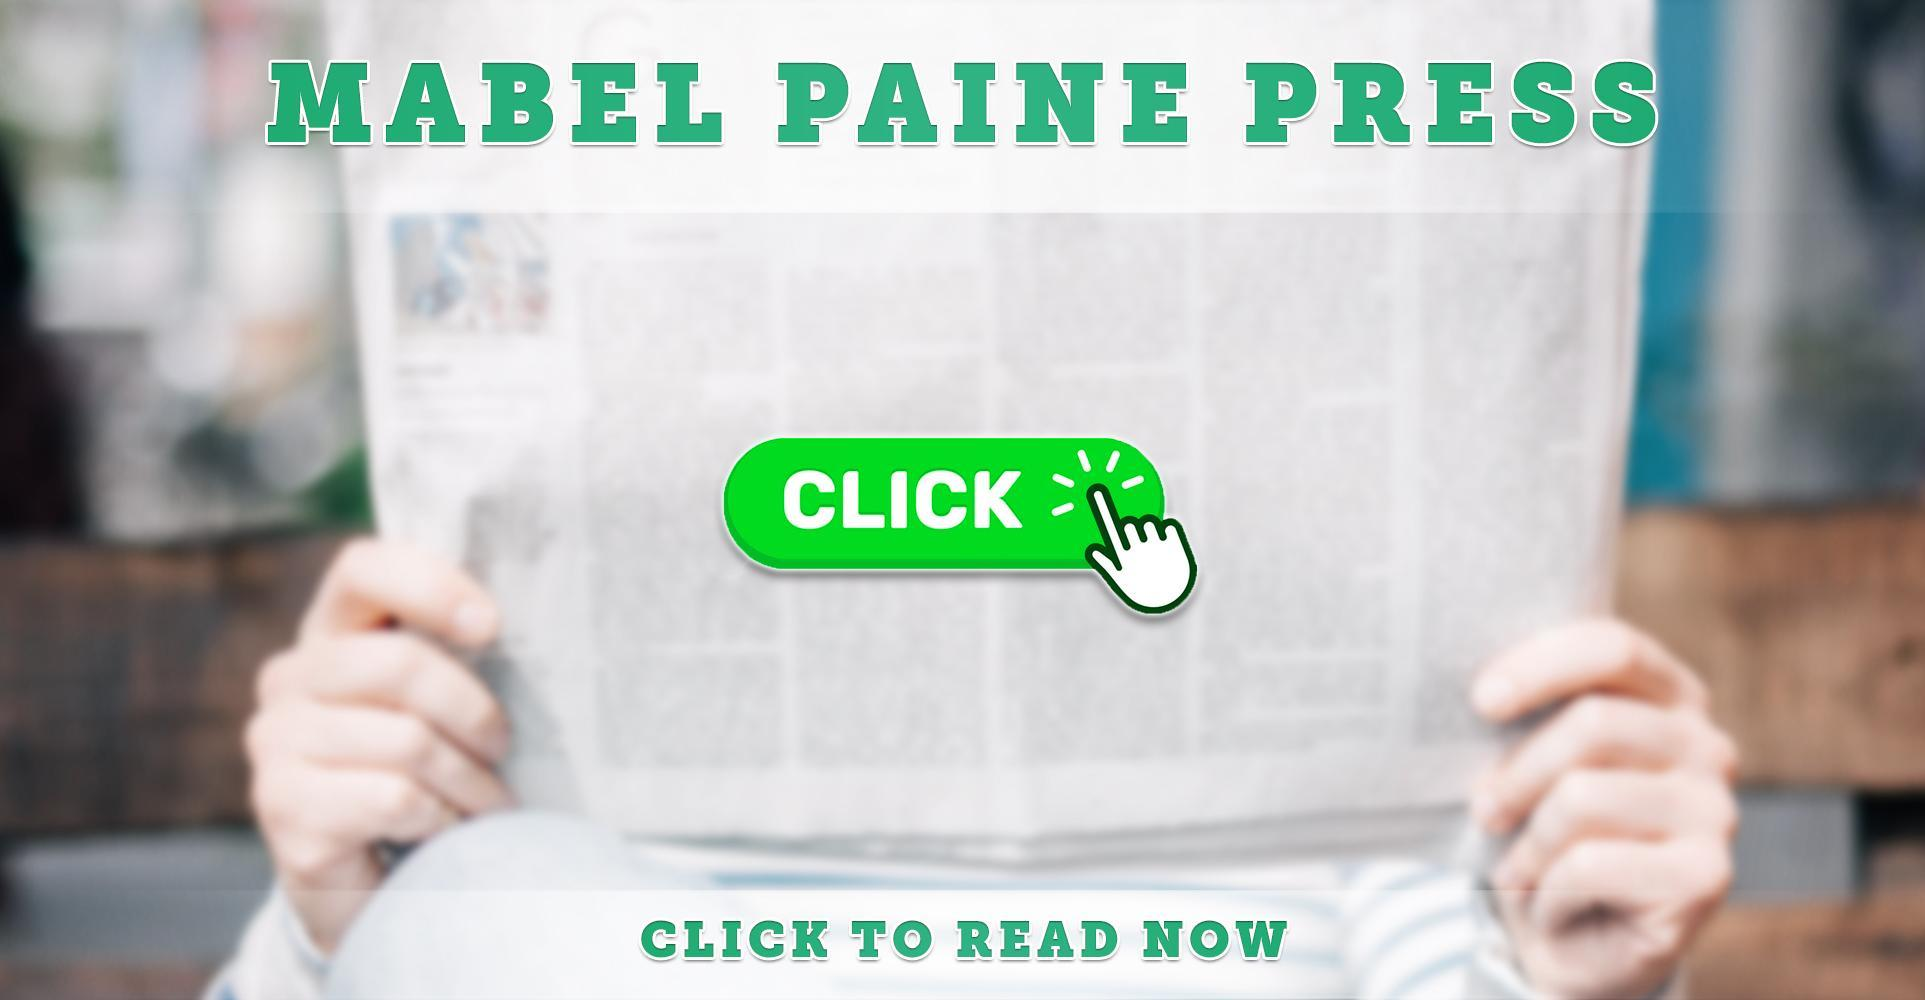 Read the Mabel Paine Press (MPP)